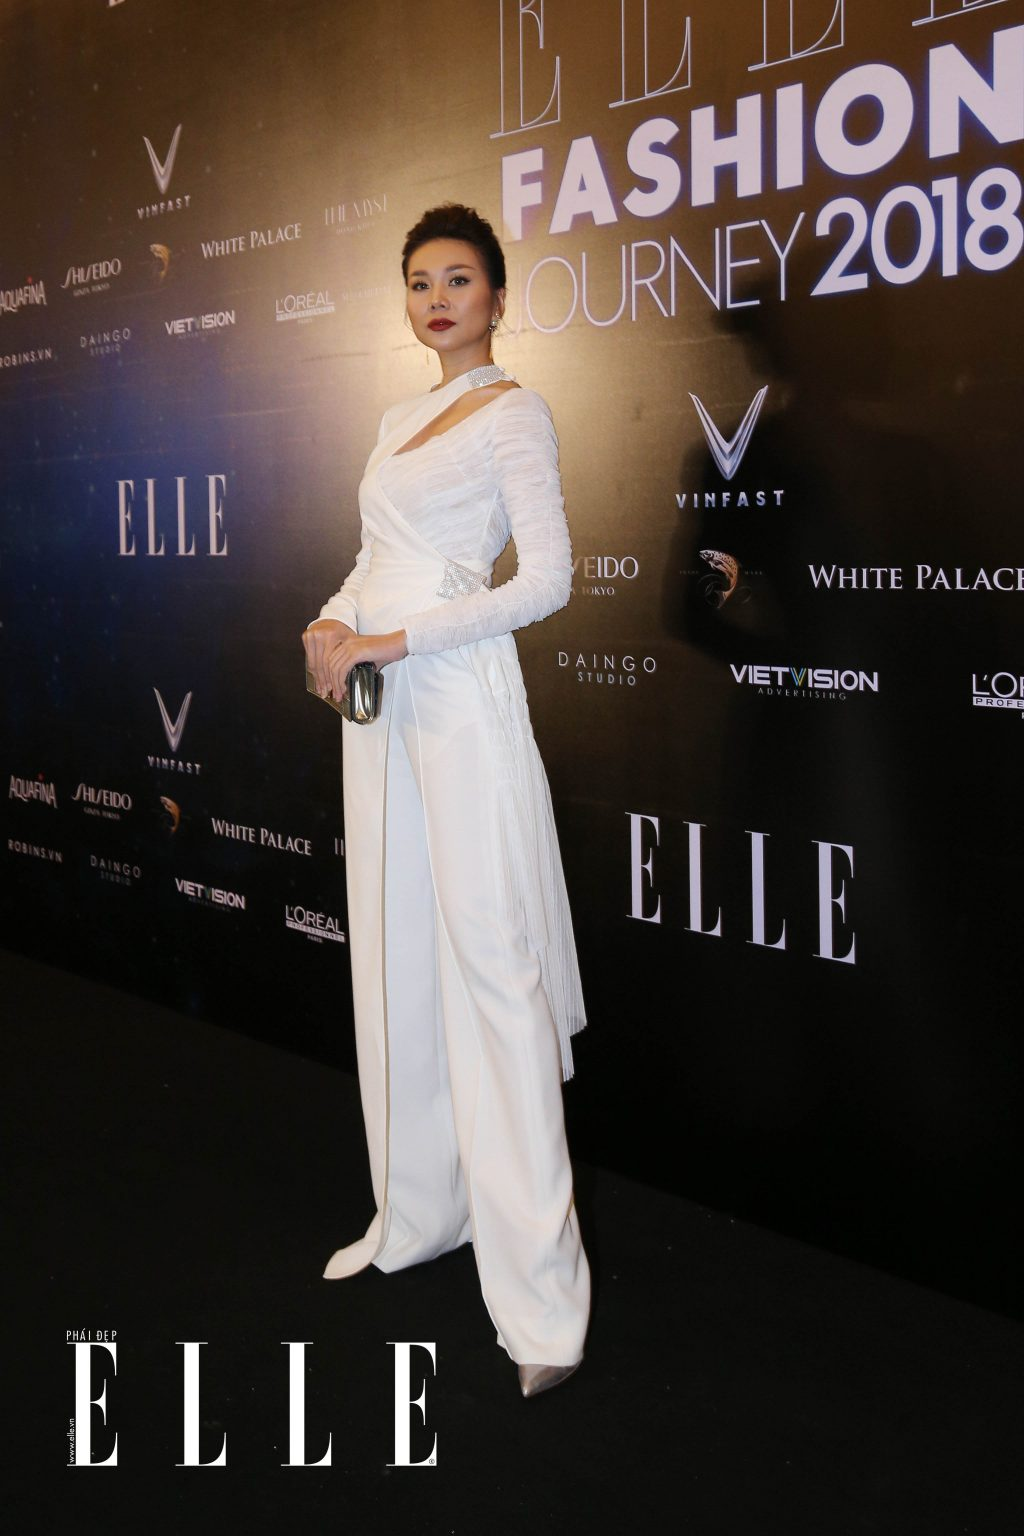 ELLE Fashion Journey tham do 2